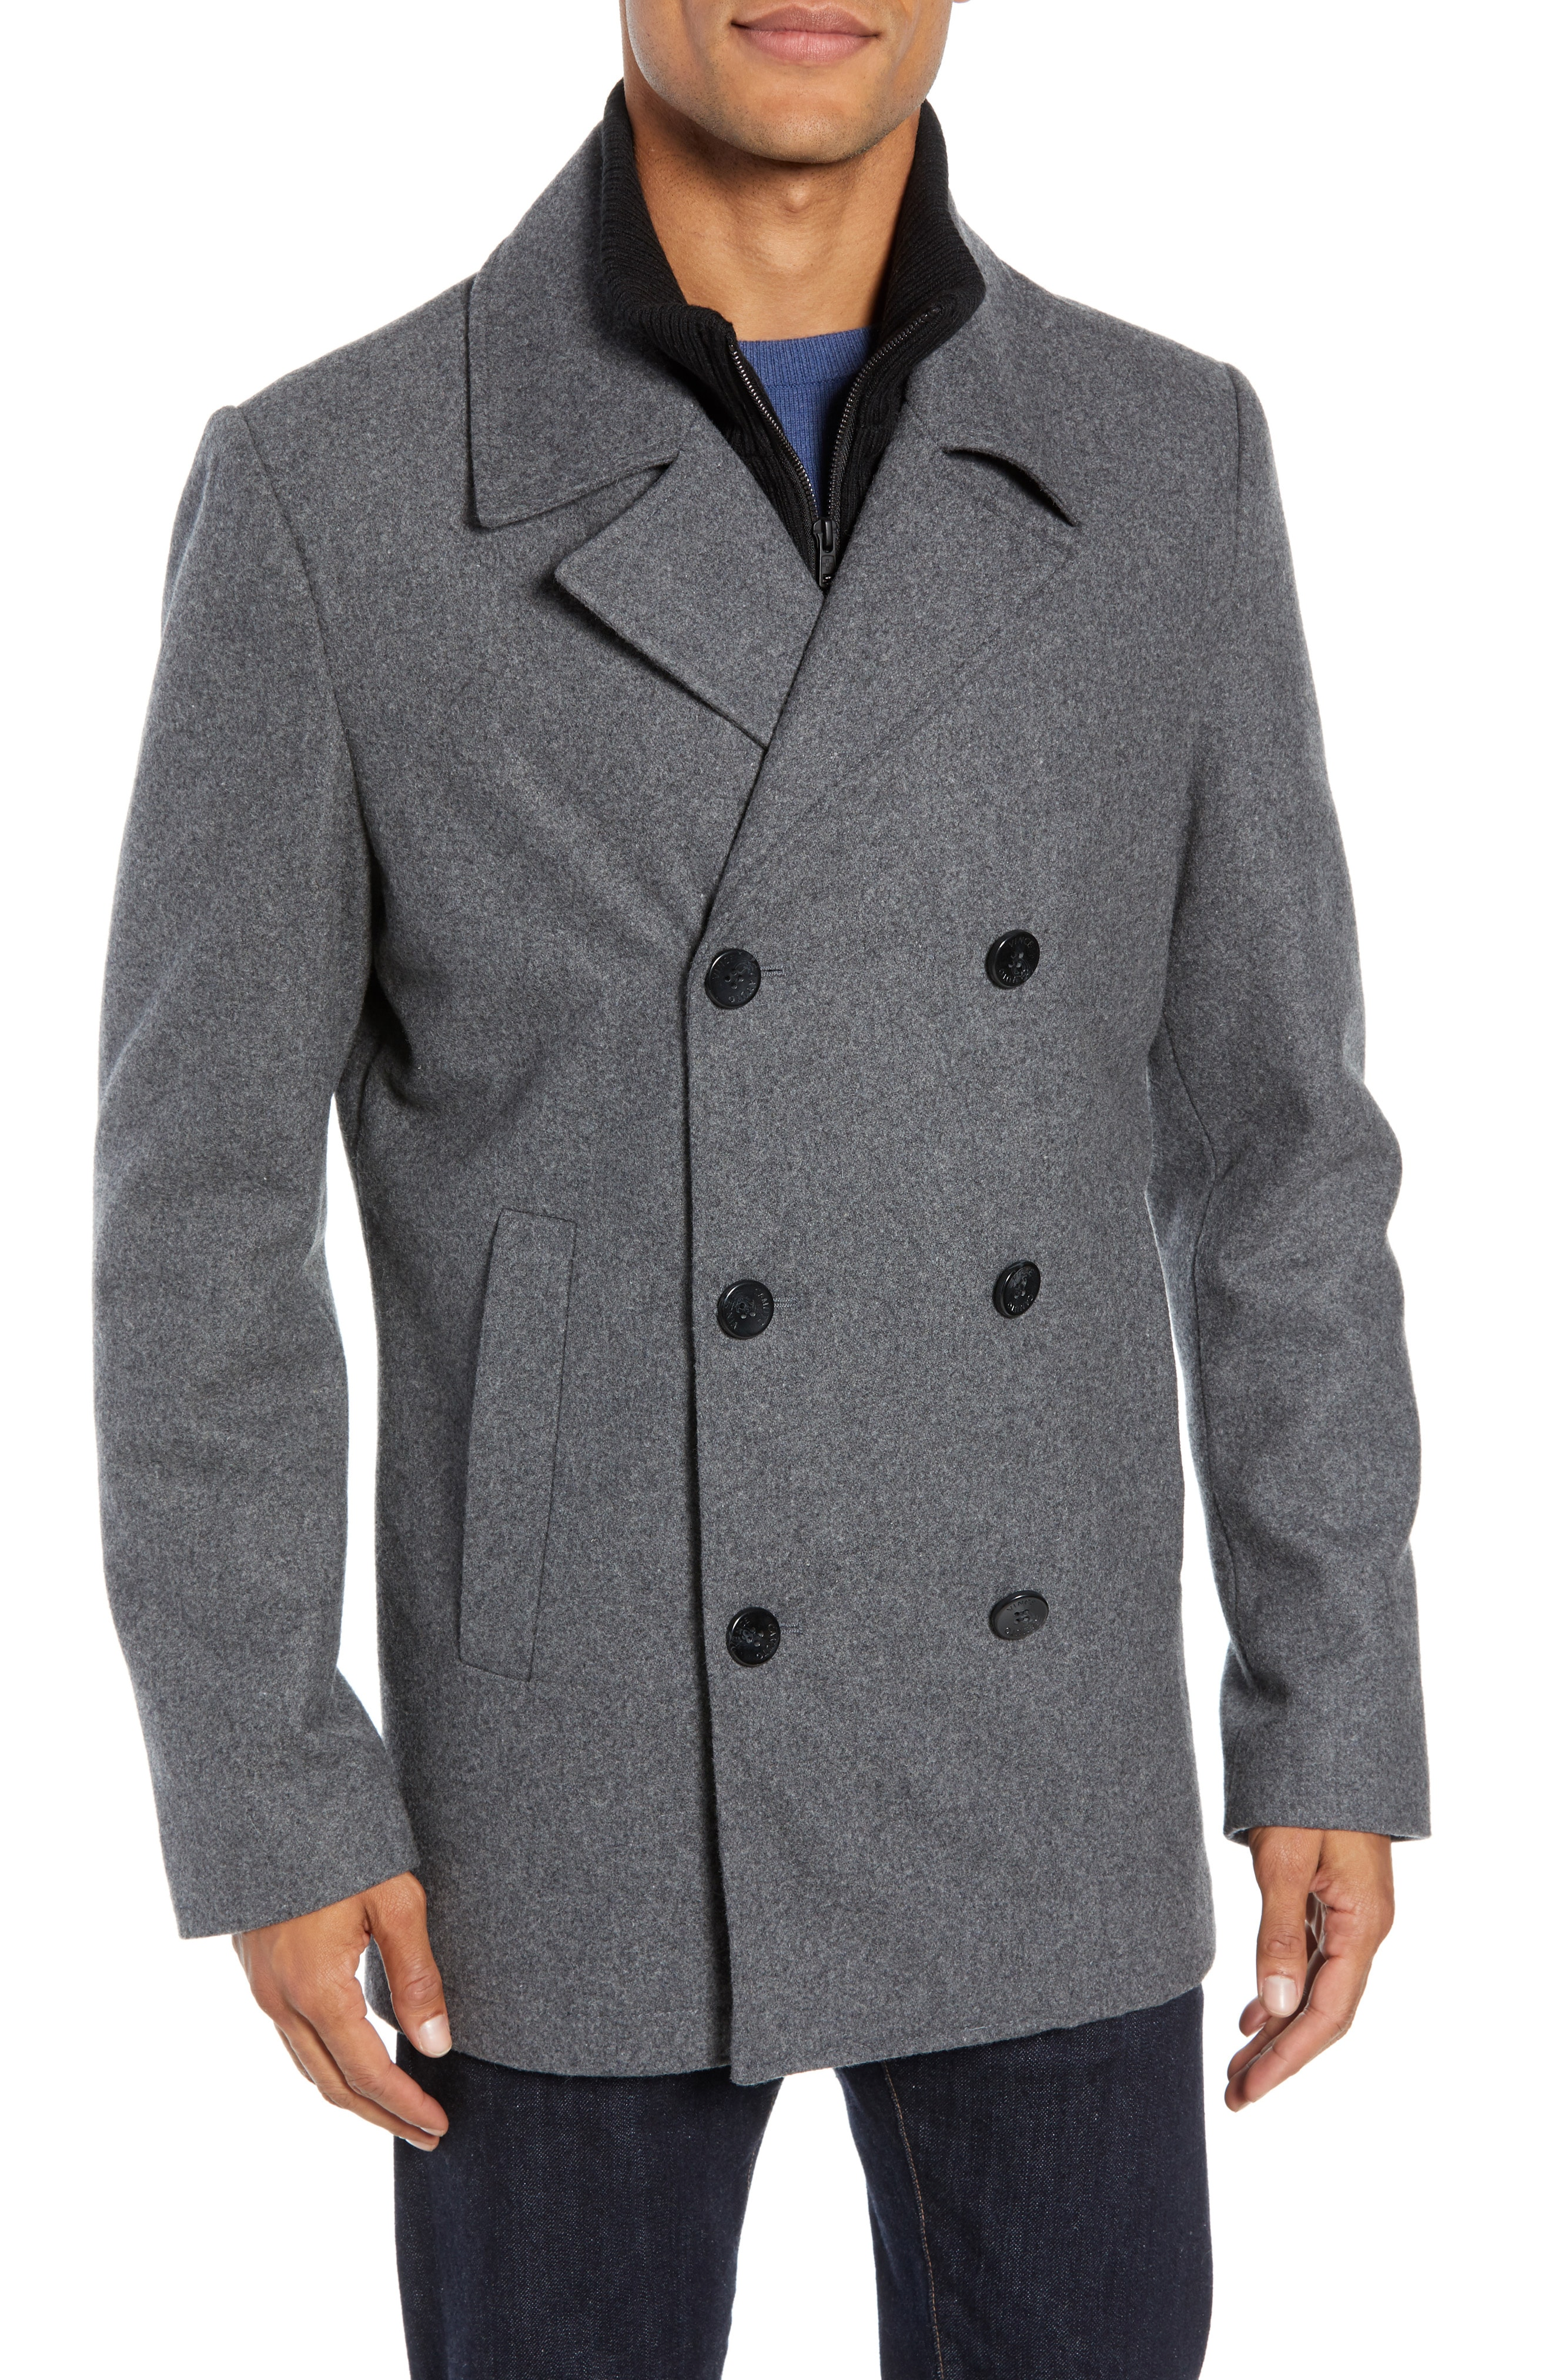 Select the trendy and   fashionable mens pea coats